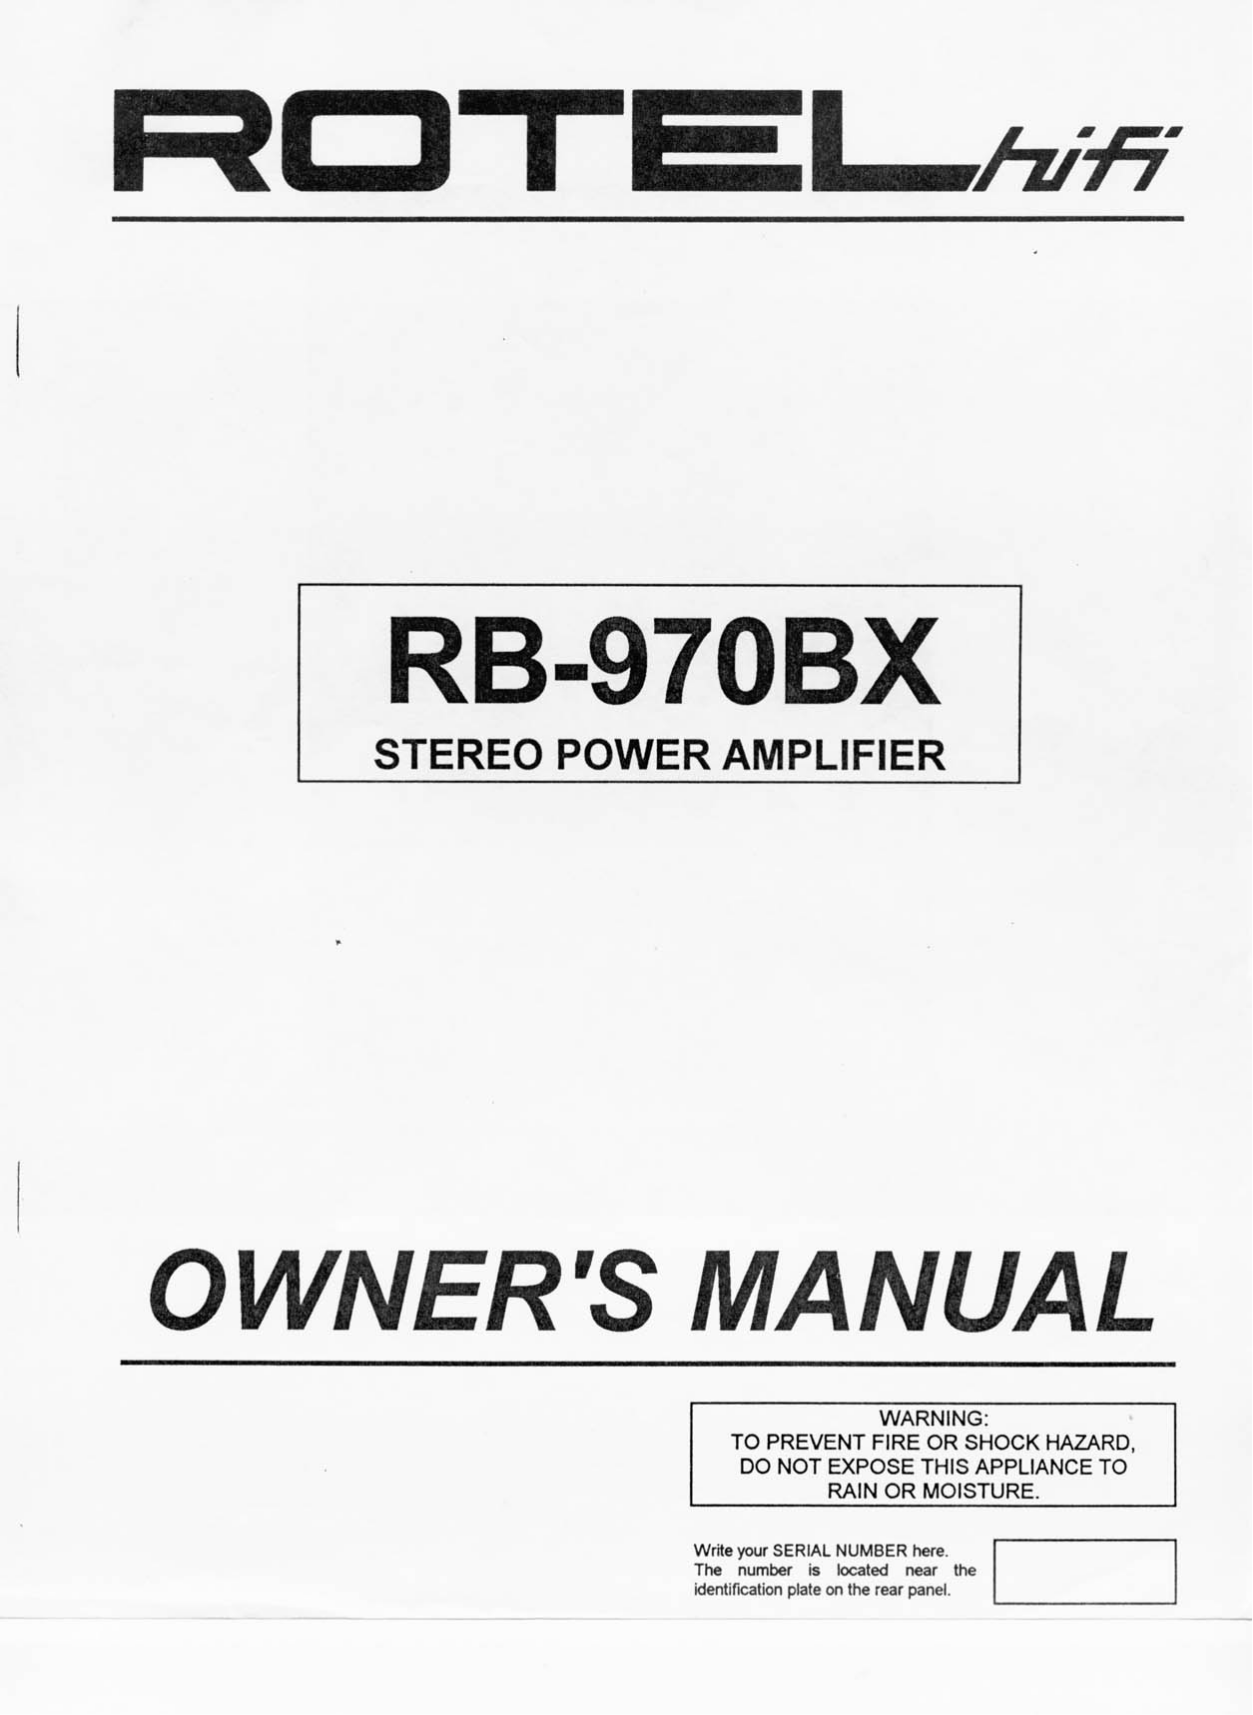 Download free pdf for Rotel RB-870BX Amp manual